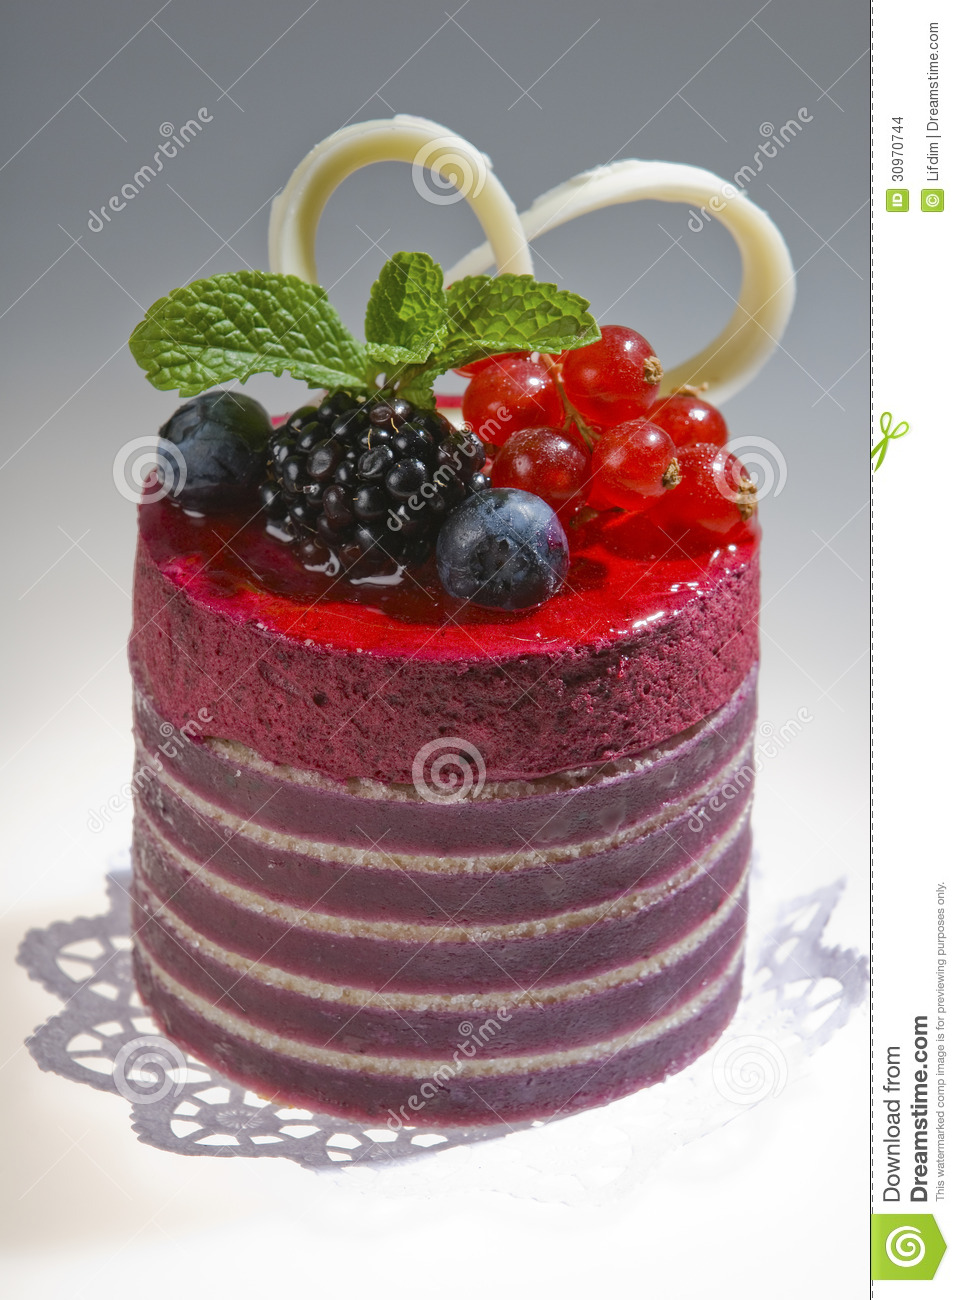 Red Colour Cake Images : Cakes With Forest Berries Stock Images - Image: 30970744